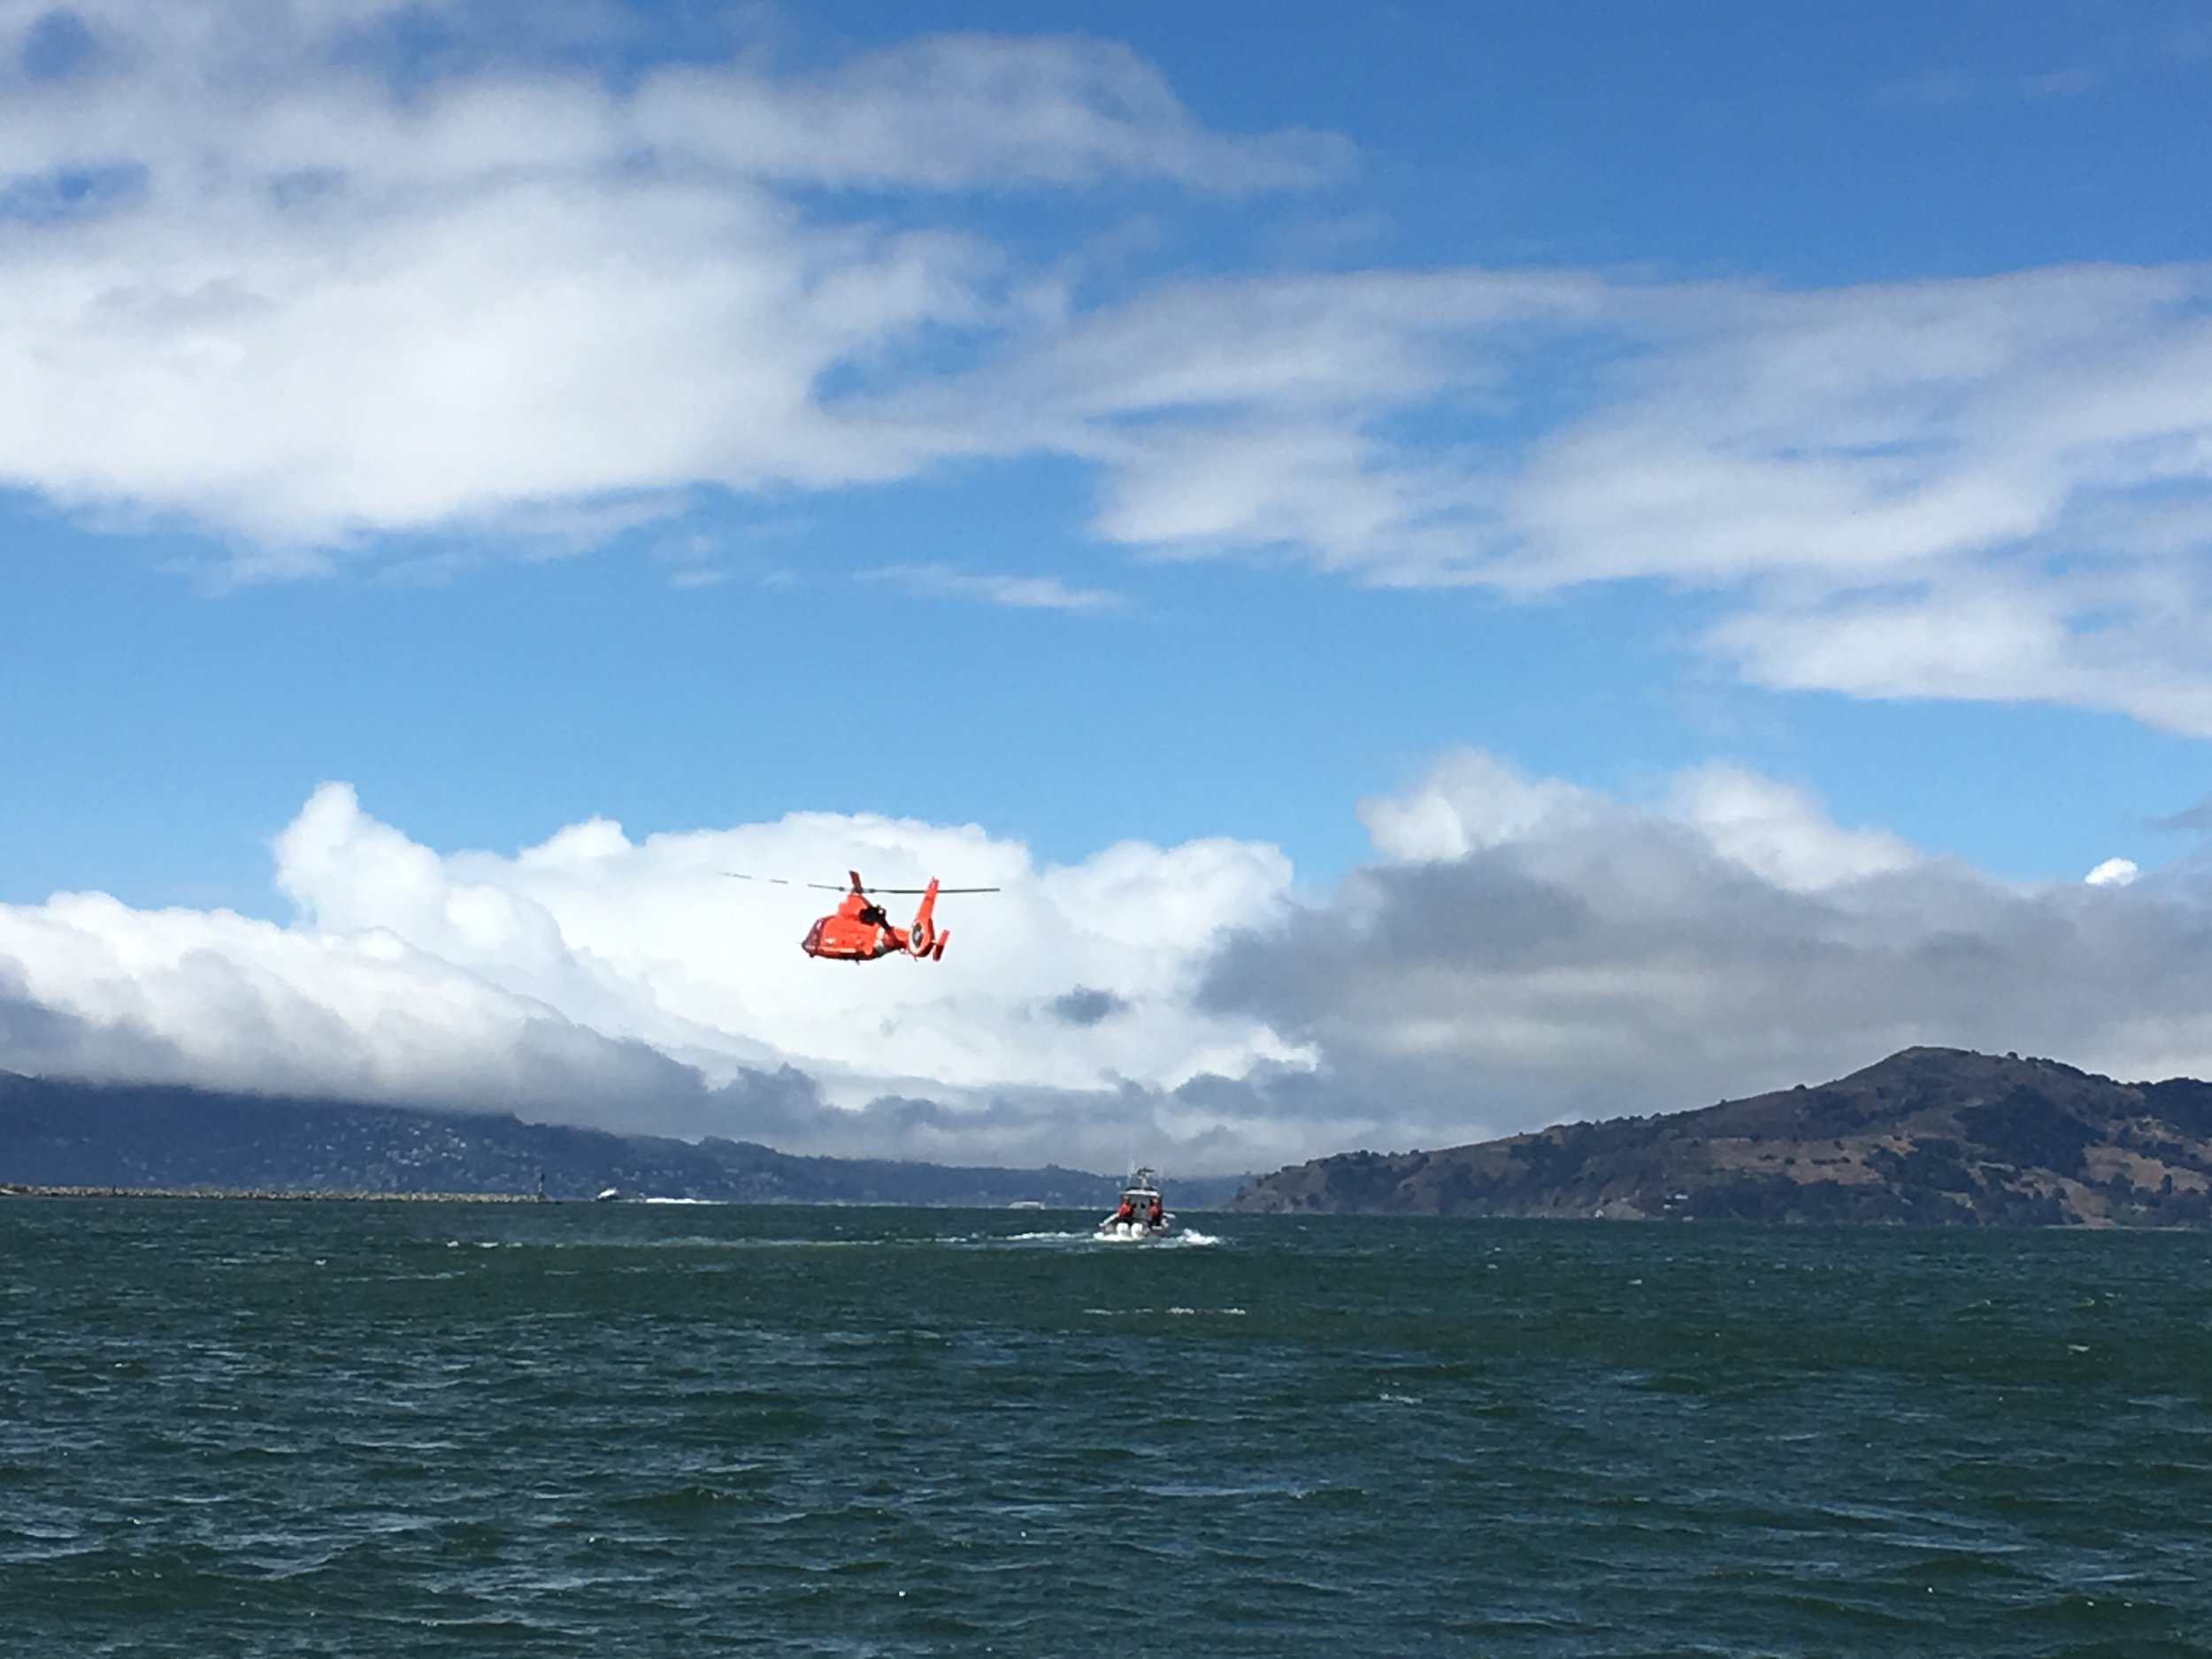 Occasionally we see the U.S. Coast Guard practicing maneuvers in the Bay. Here, the helicopter was hovering over and following the RIB vessel.